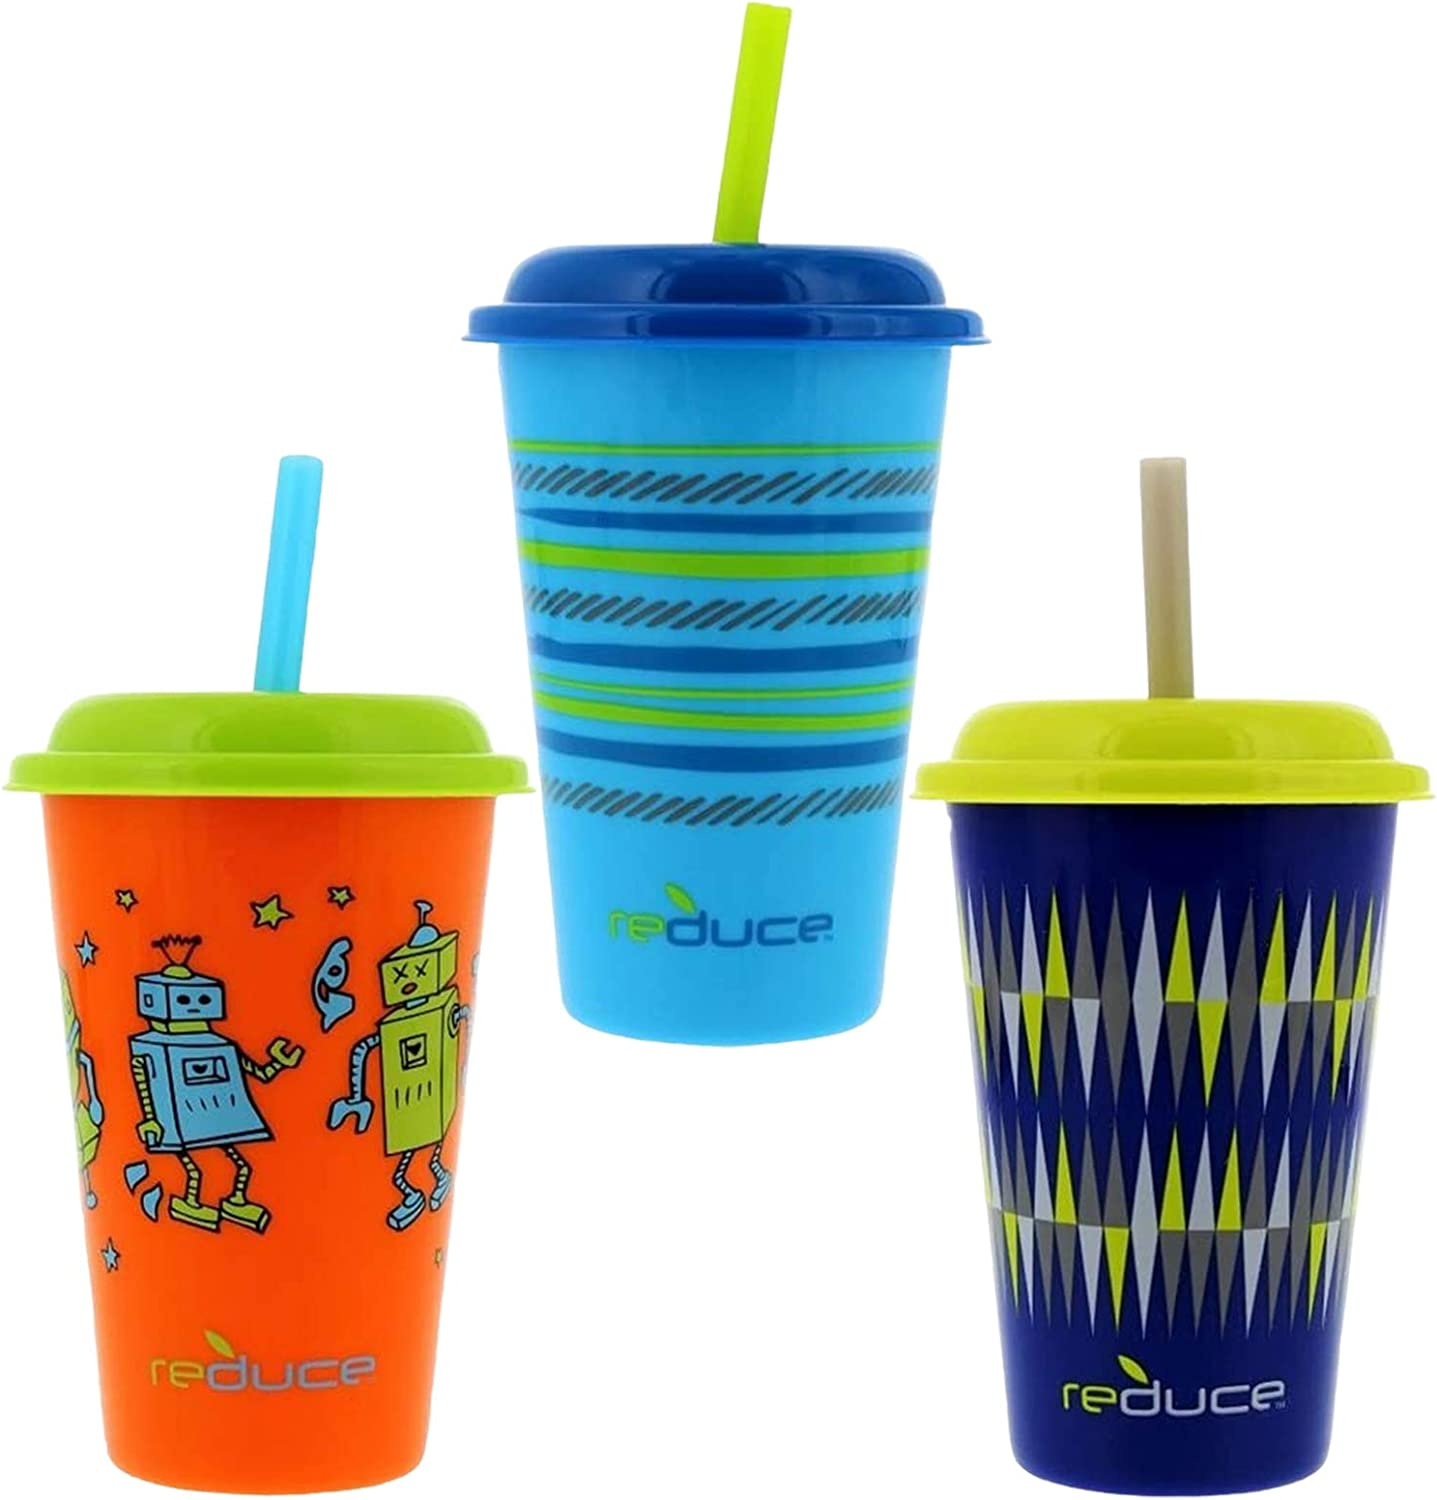 Reduce GoGo's, 3 Pack – 12oz Cups with Straws for Kids